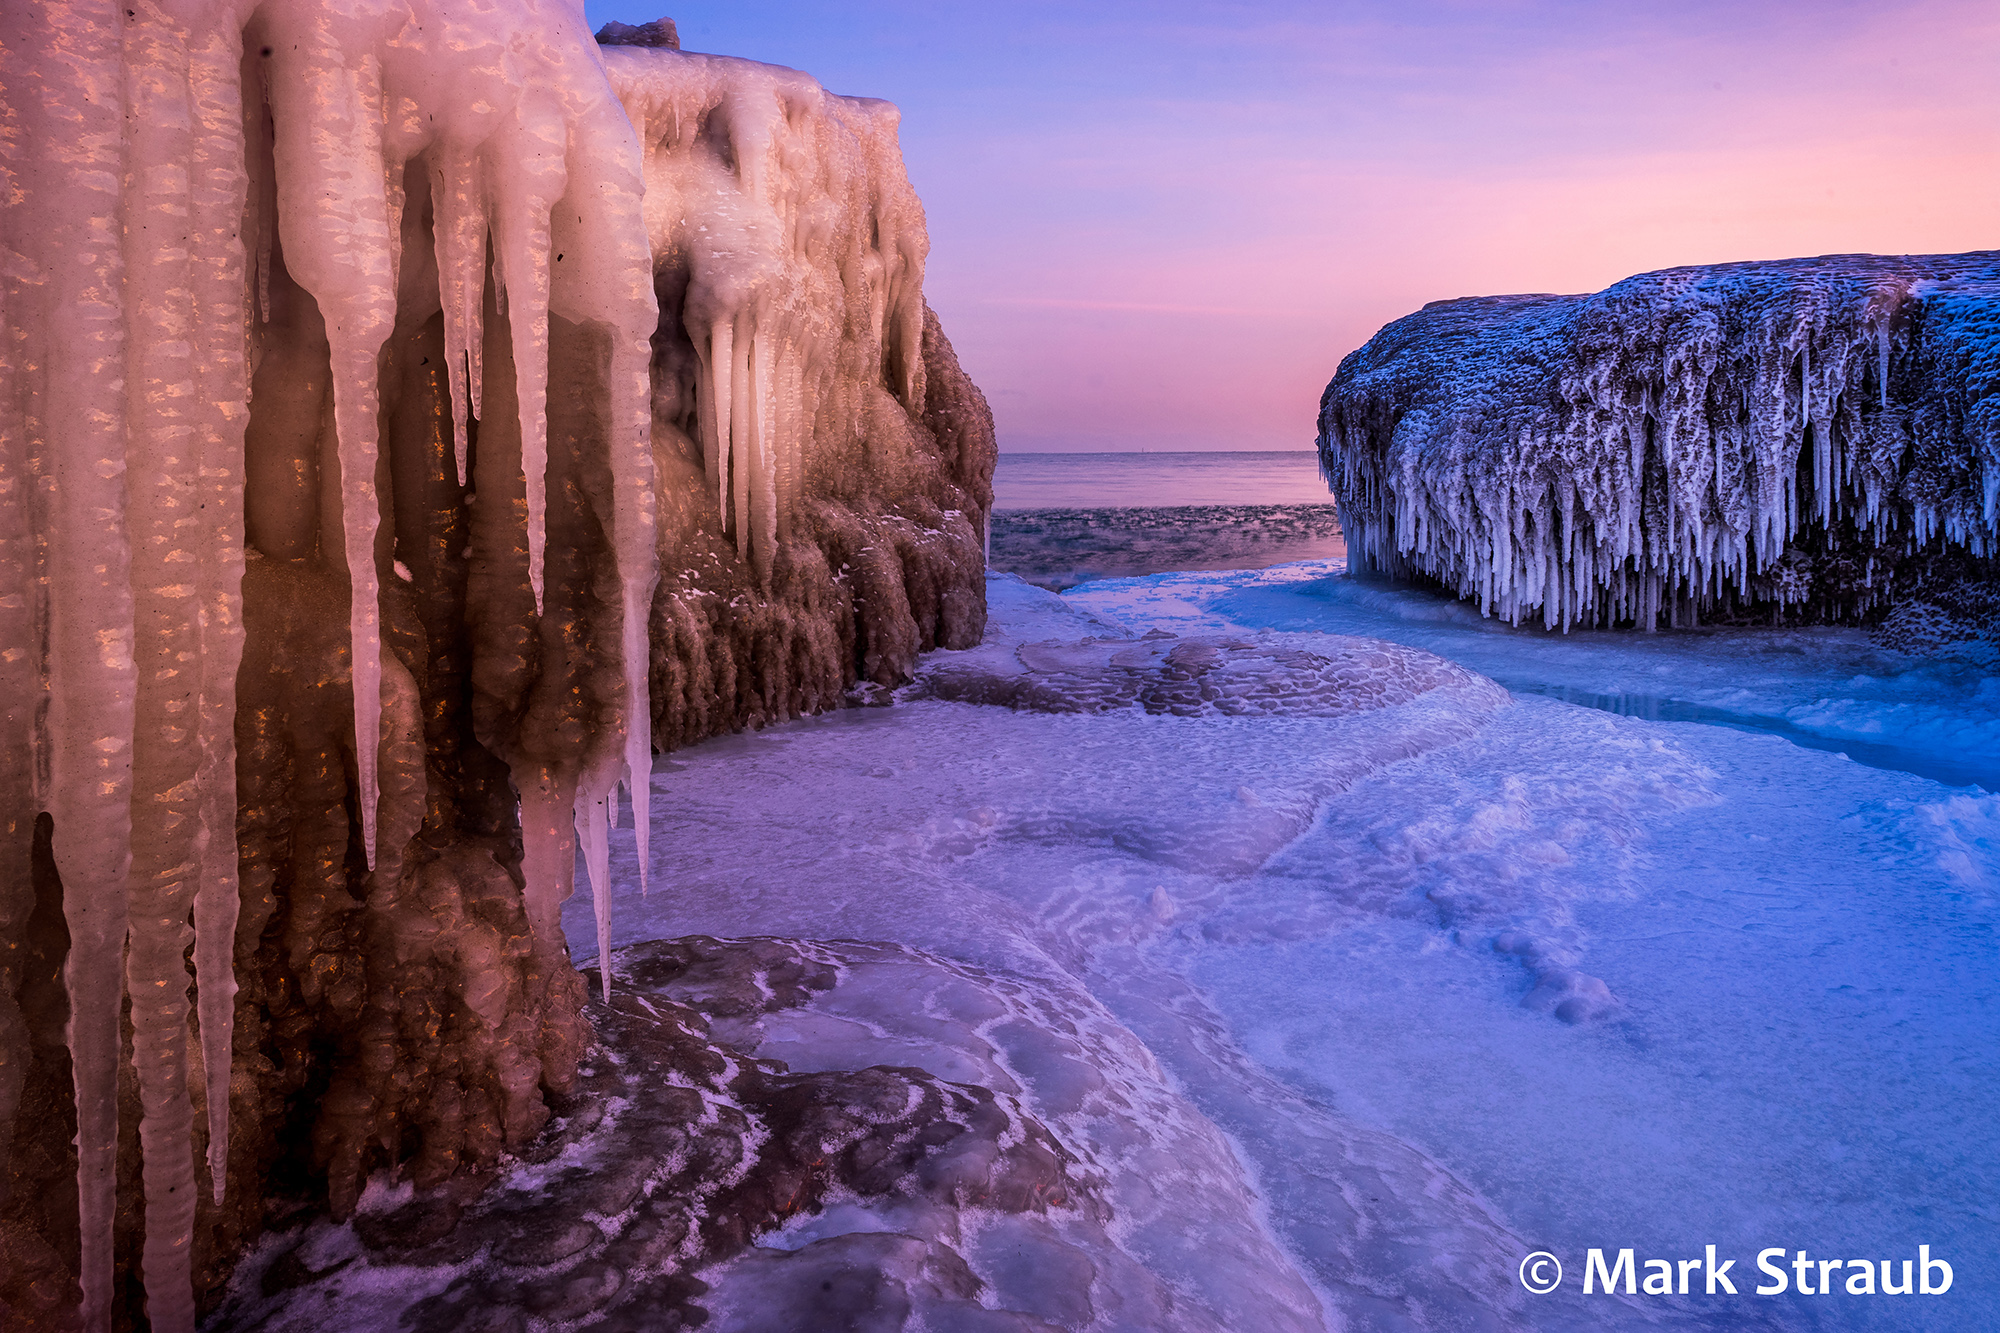 The frozen shore of Lake Michigan at sunrise